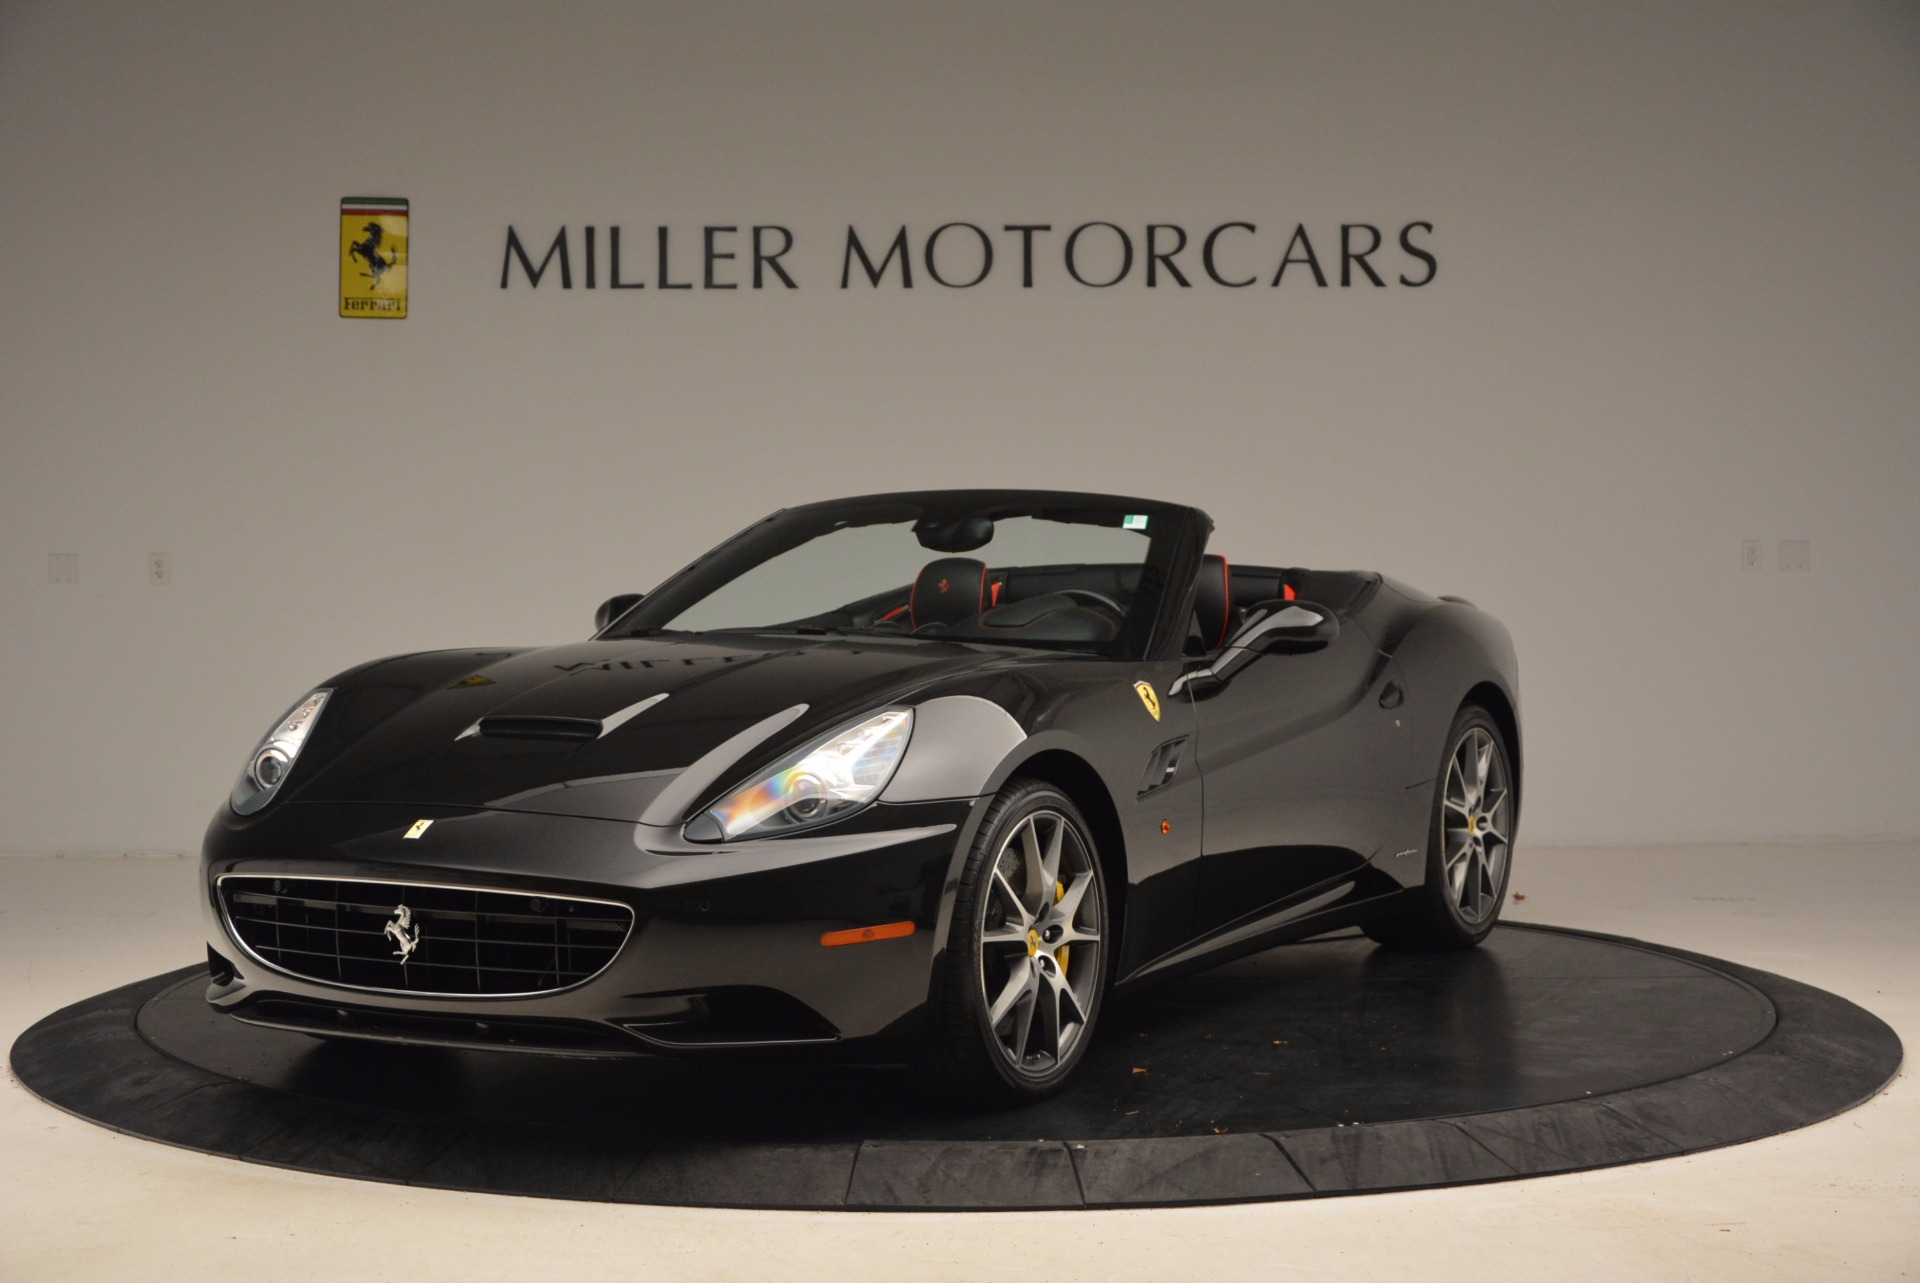 Used 2013 Ferrari California for sale Sold at McLaren Greenwich in Greenwich CT 06830 1